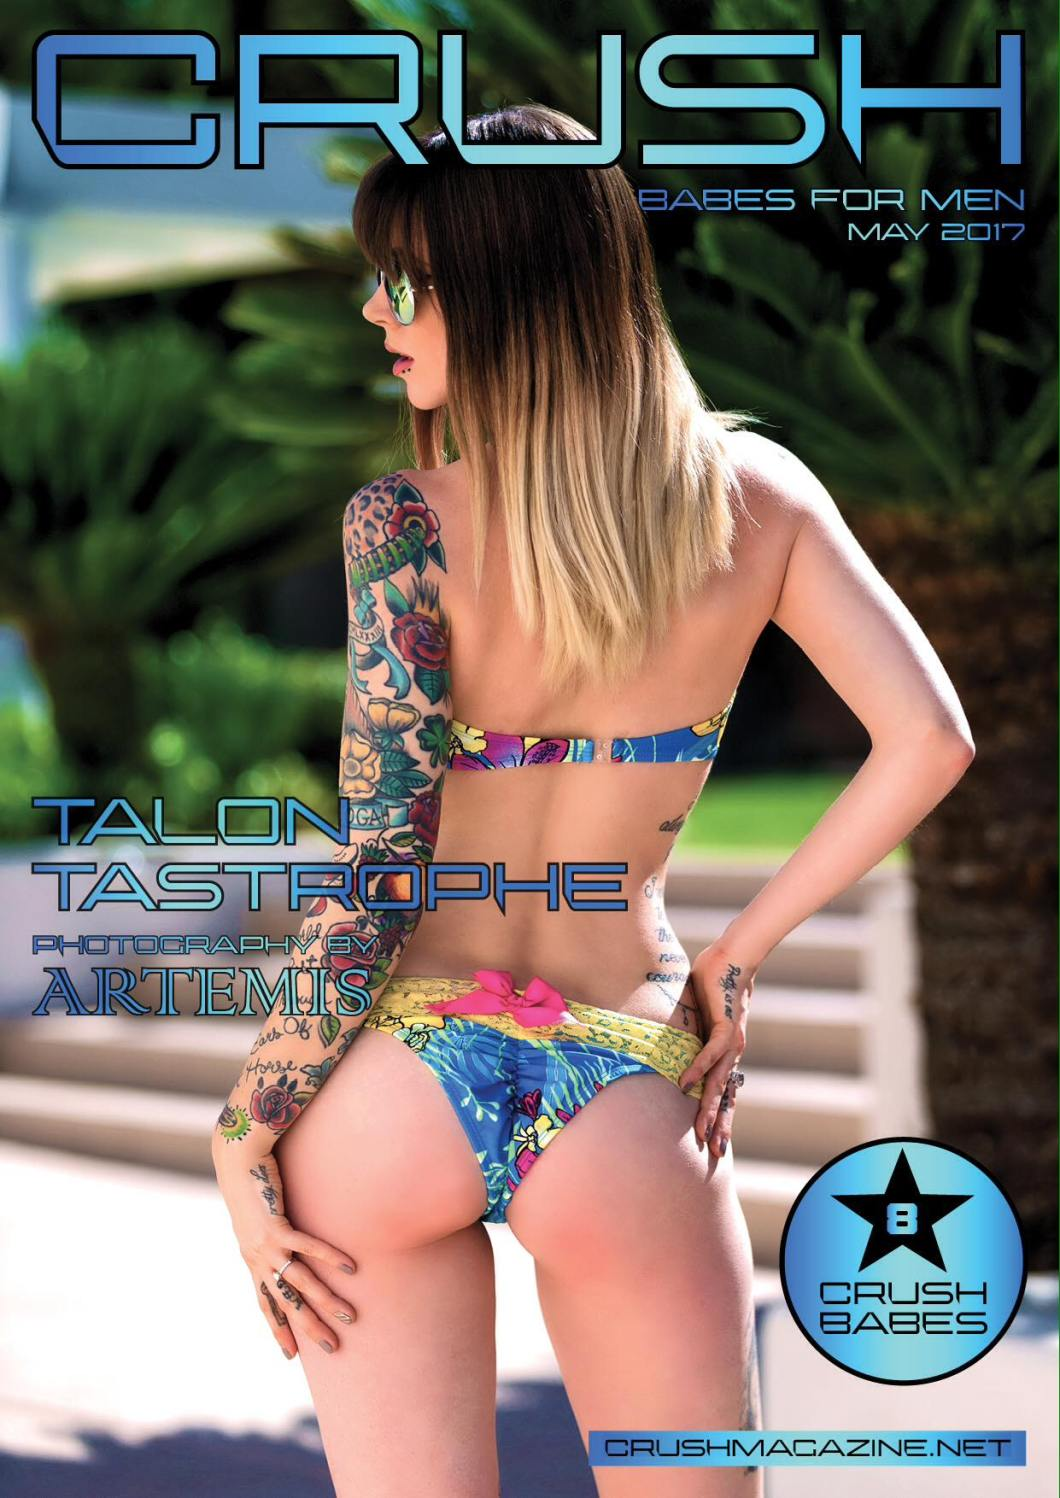 CRUSH Cover by Artemis PhotoWorks featuring Talon Tastrophe